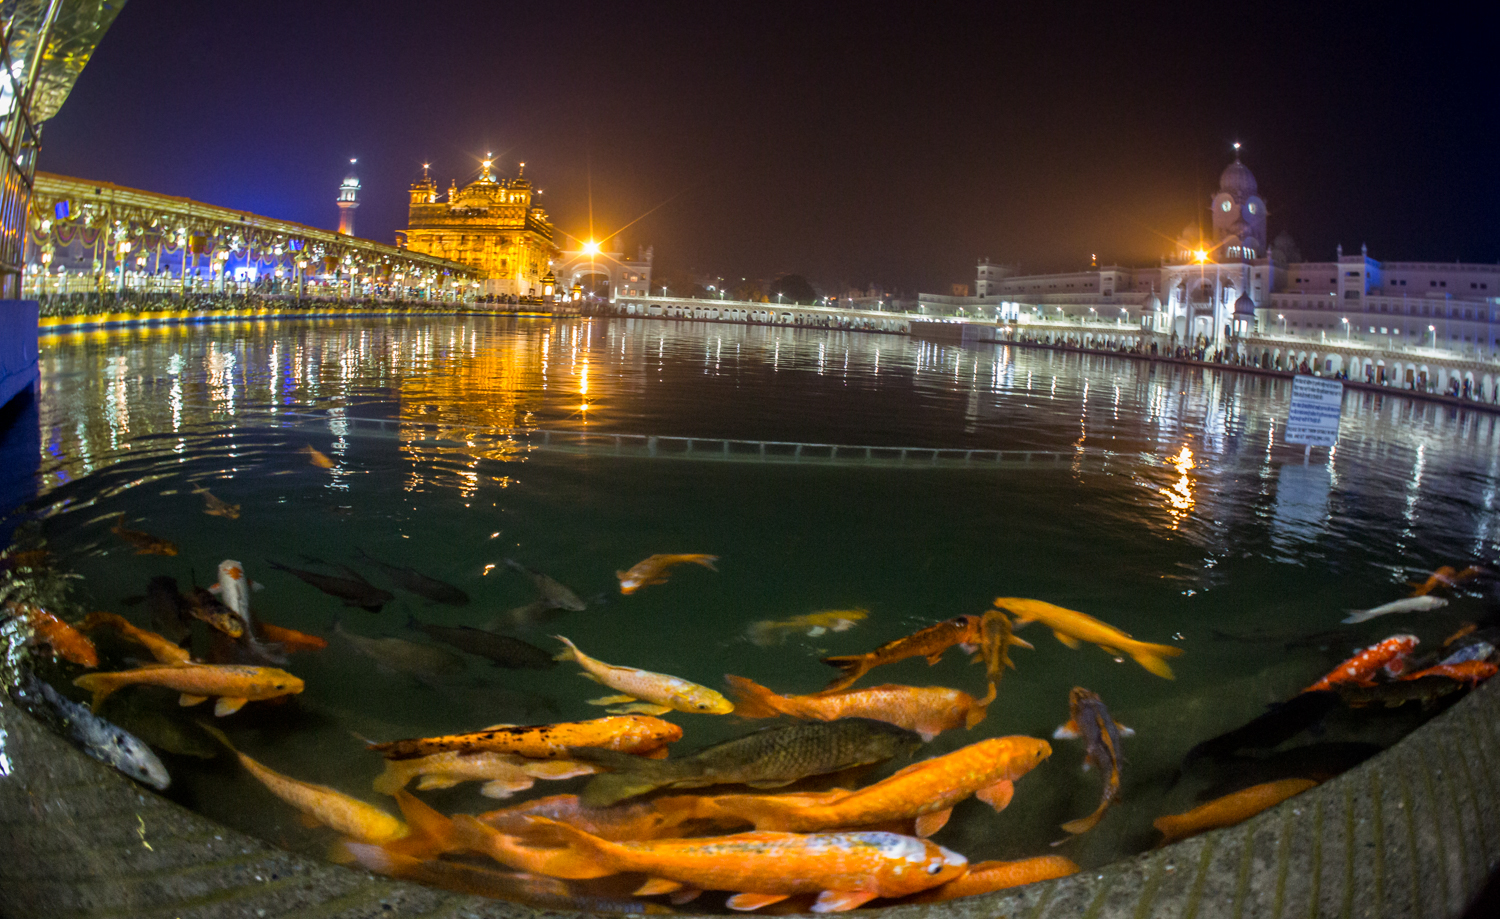 The lake surrounding the Golden Temple.